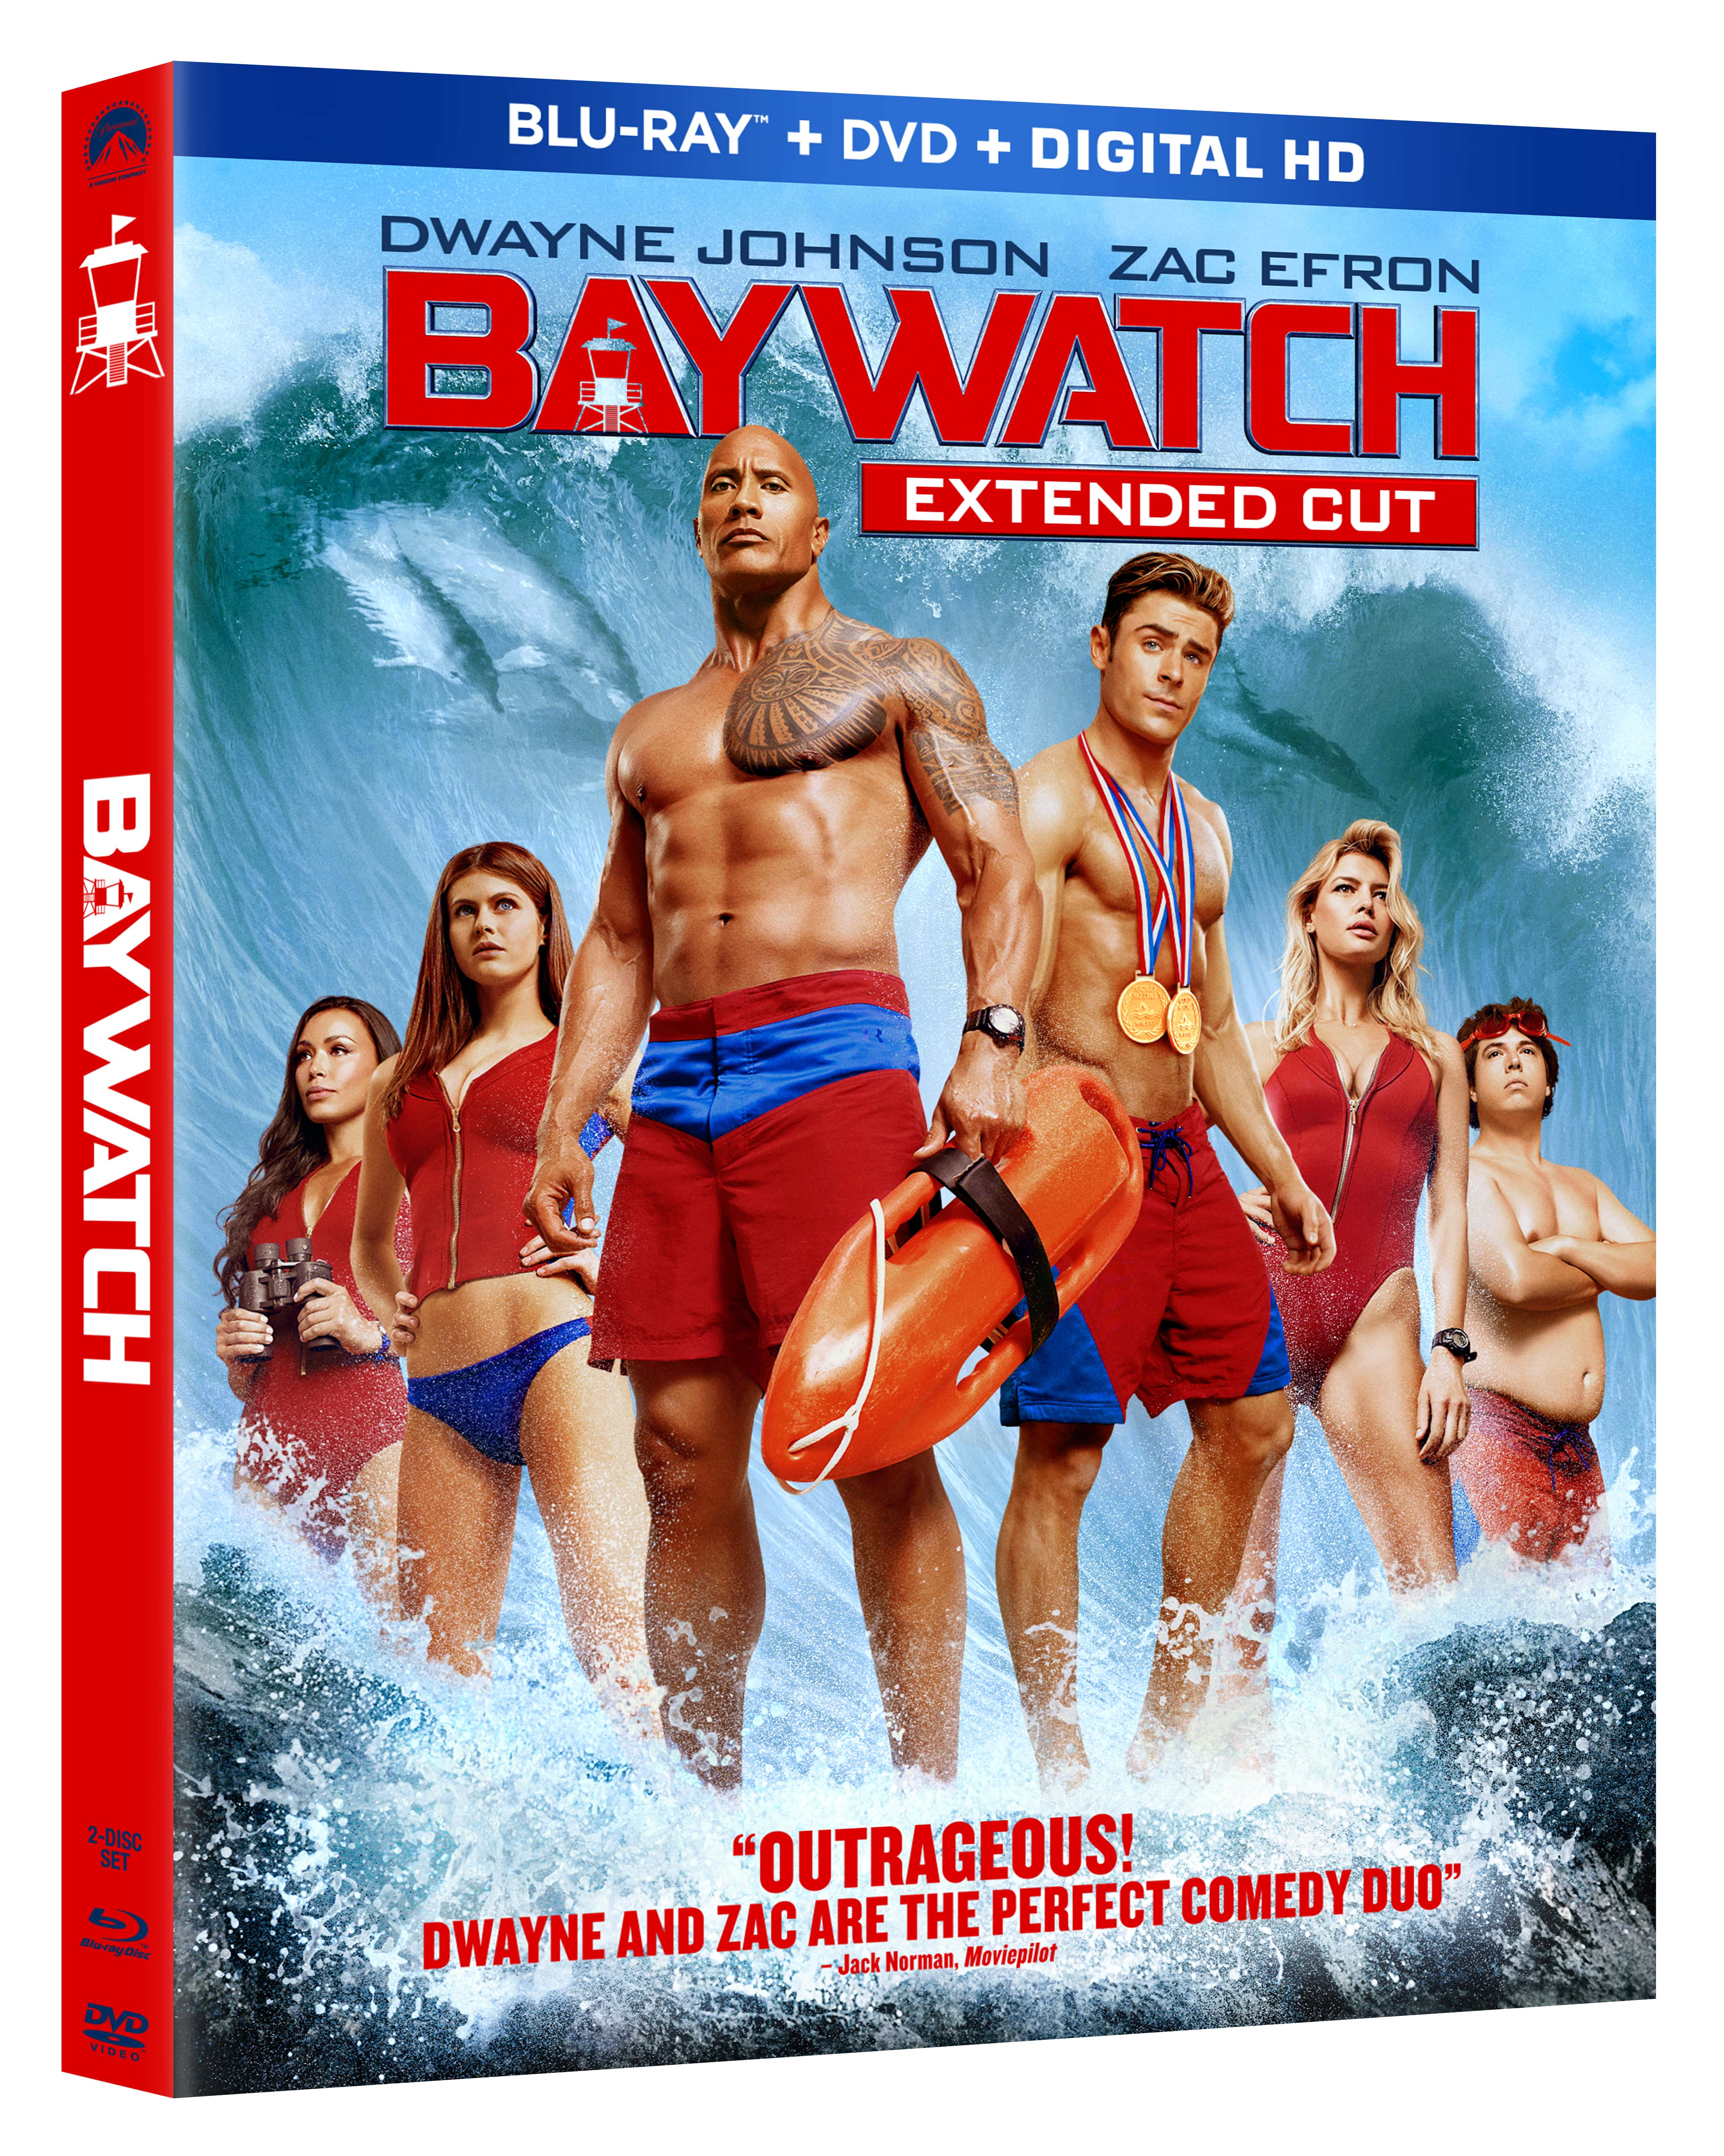 BAYWATCH – DVD Giveaway